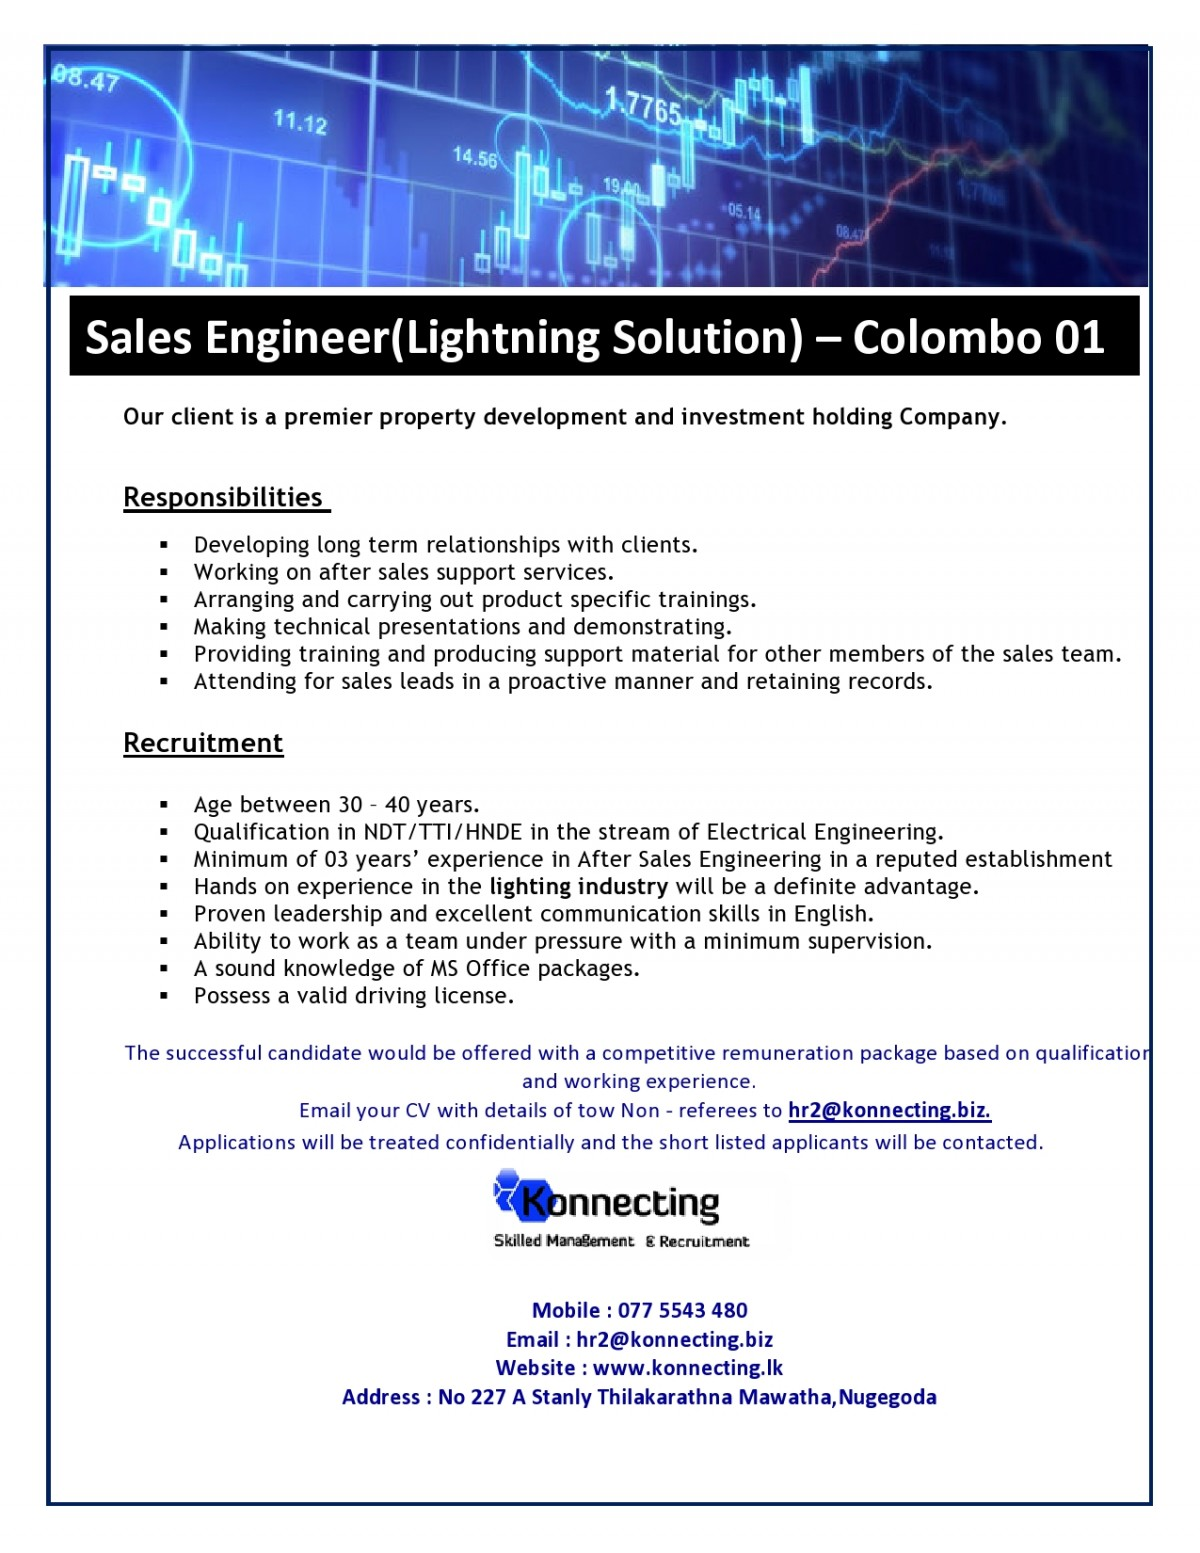 s engineer lightning solution job vacancy in sri lanka zno1kueydza7jgf jpg